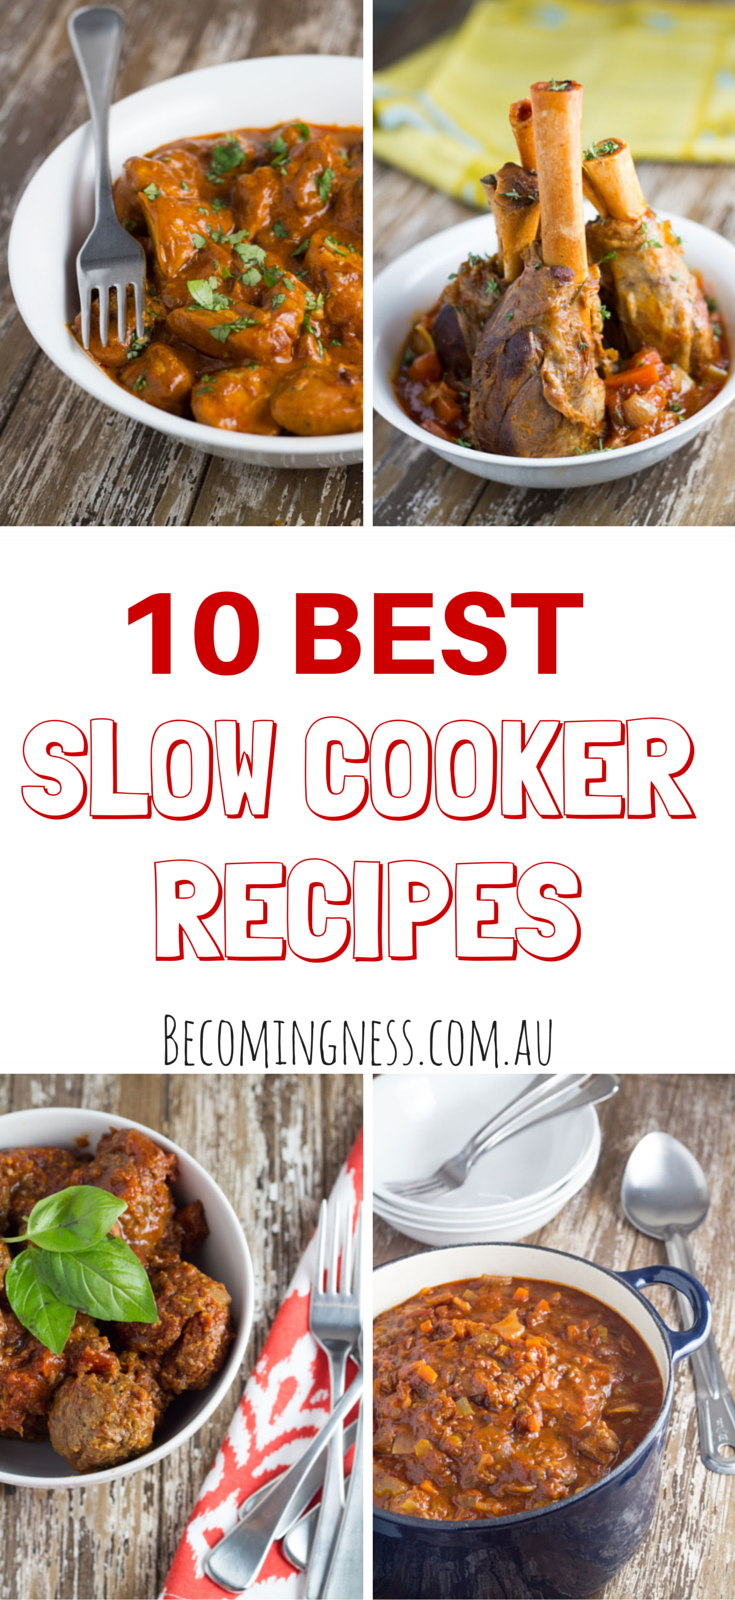 10-best-slow-cooker-recipes